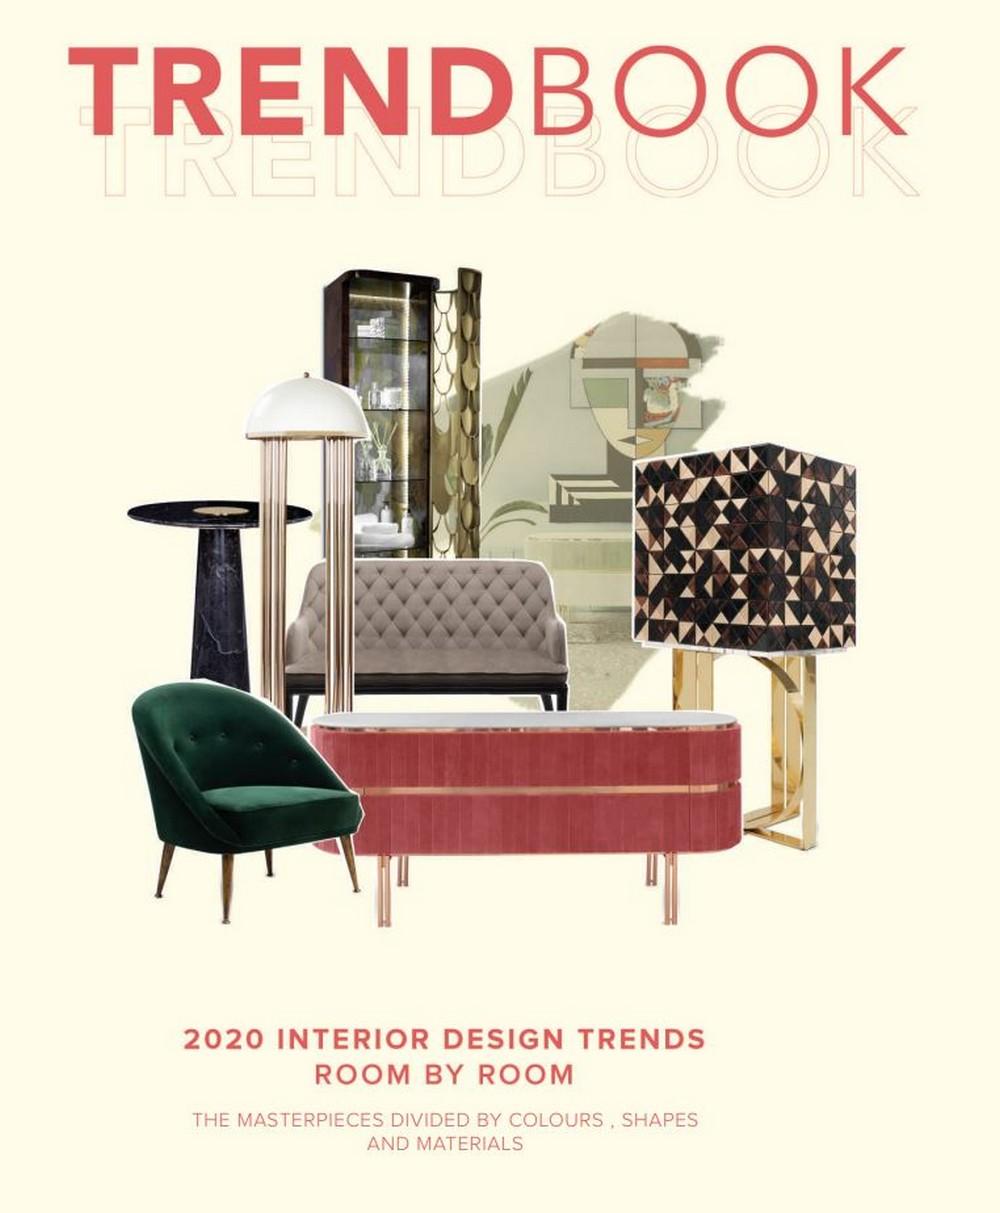 Maison et Objet 2020 - Here Is Why You Should By CovetED's 16th Issue! maison et objet Maison et Objet 2020 – Here Is Why You Should By CovetED's 16th Issue! Maison et Objet 2020 Here Is Why You Should By CovetEDs 16th Issue 6